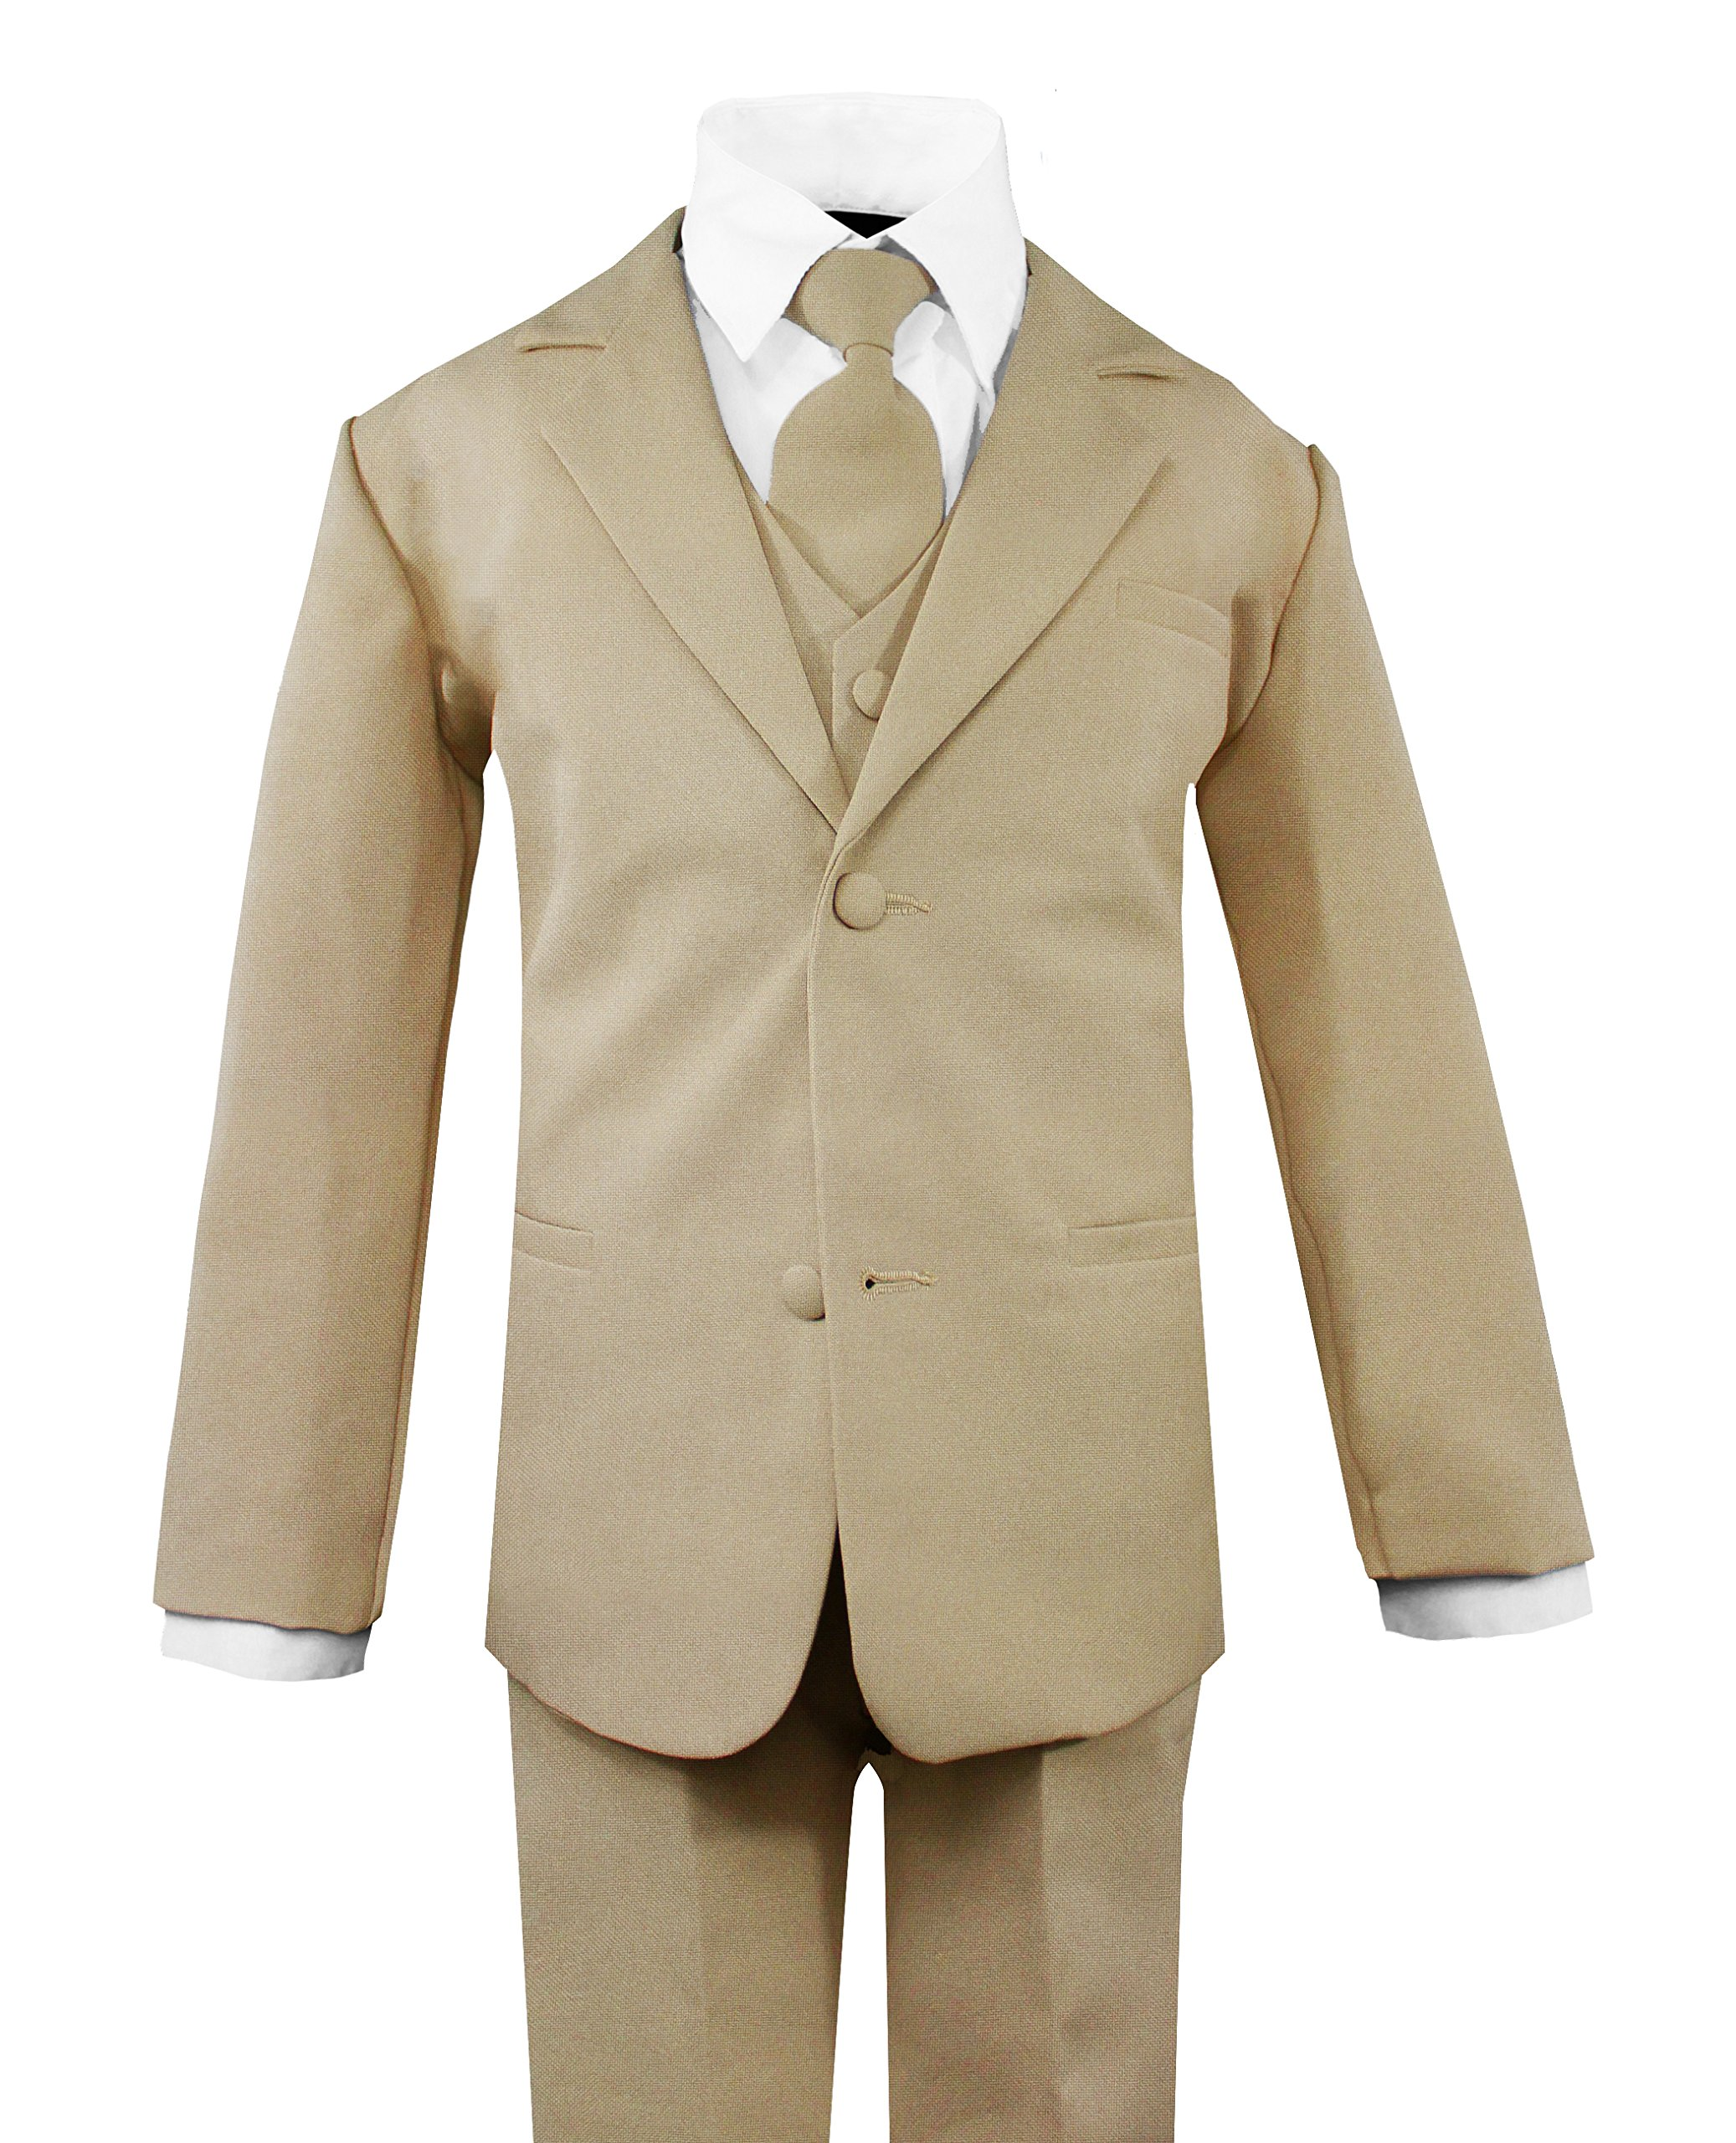 Luca Gabriel Toddler Boys' 5 Piece Classic Fit No Tail Formal Khaki Dress Suit Set with Tie and Vest - Size 7 by Luca Gabriel (Image #1)